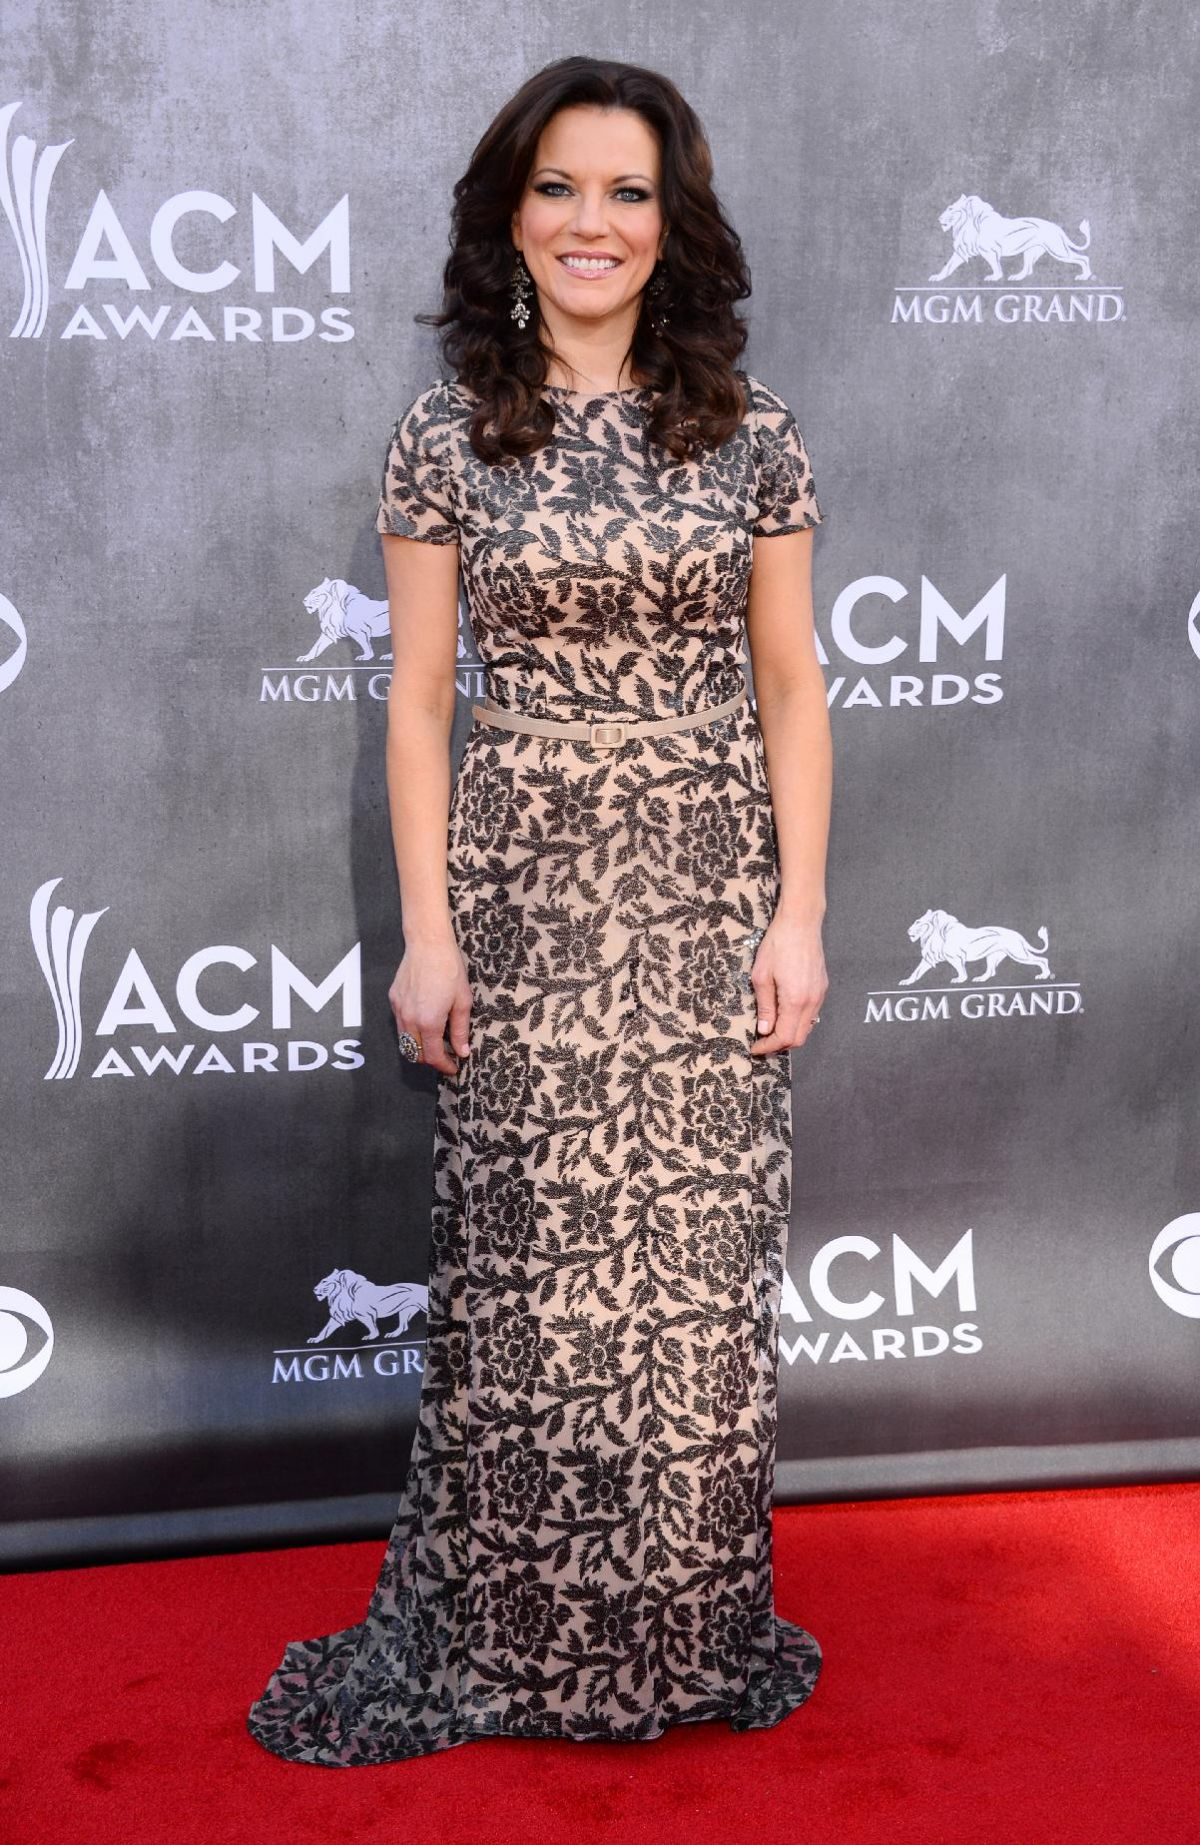 MARTINA MCBRIDE at 2014 Academy of Country Music Awards